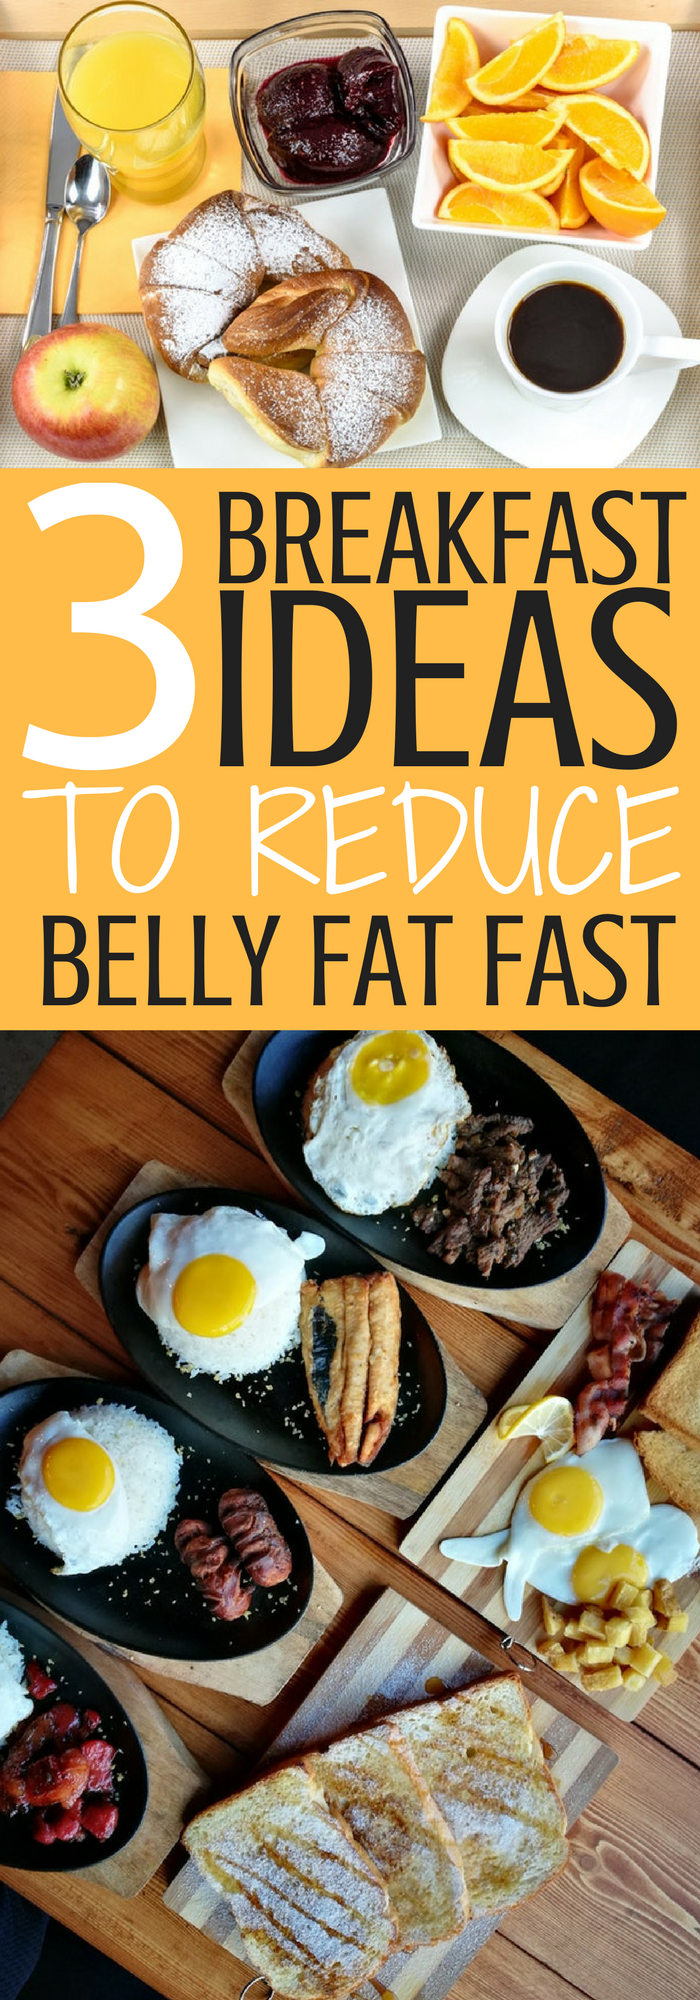 3 Breakfast Ideas To Reduce Belly Fat Fast Share All Your Pins